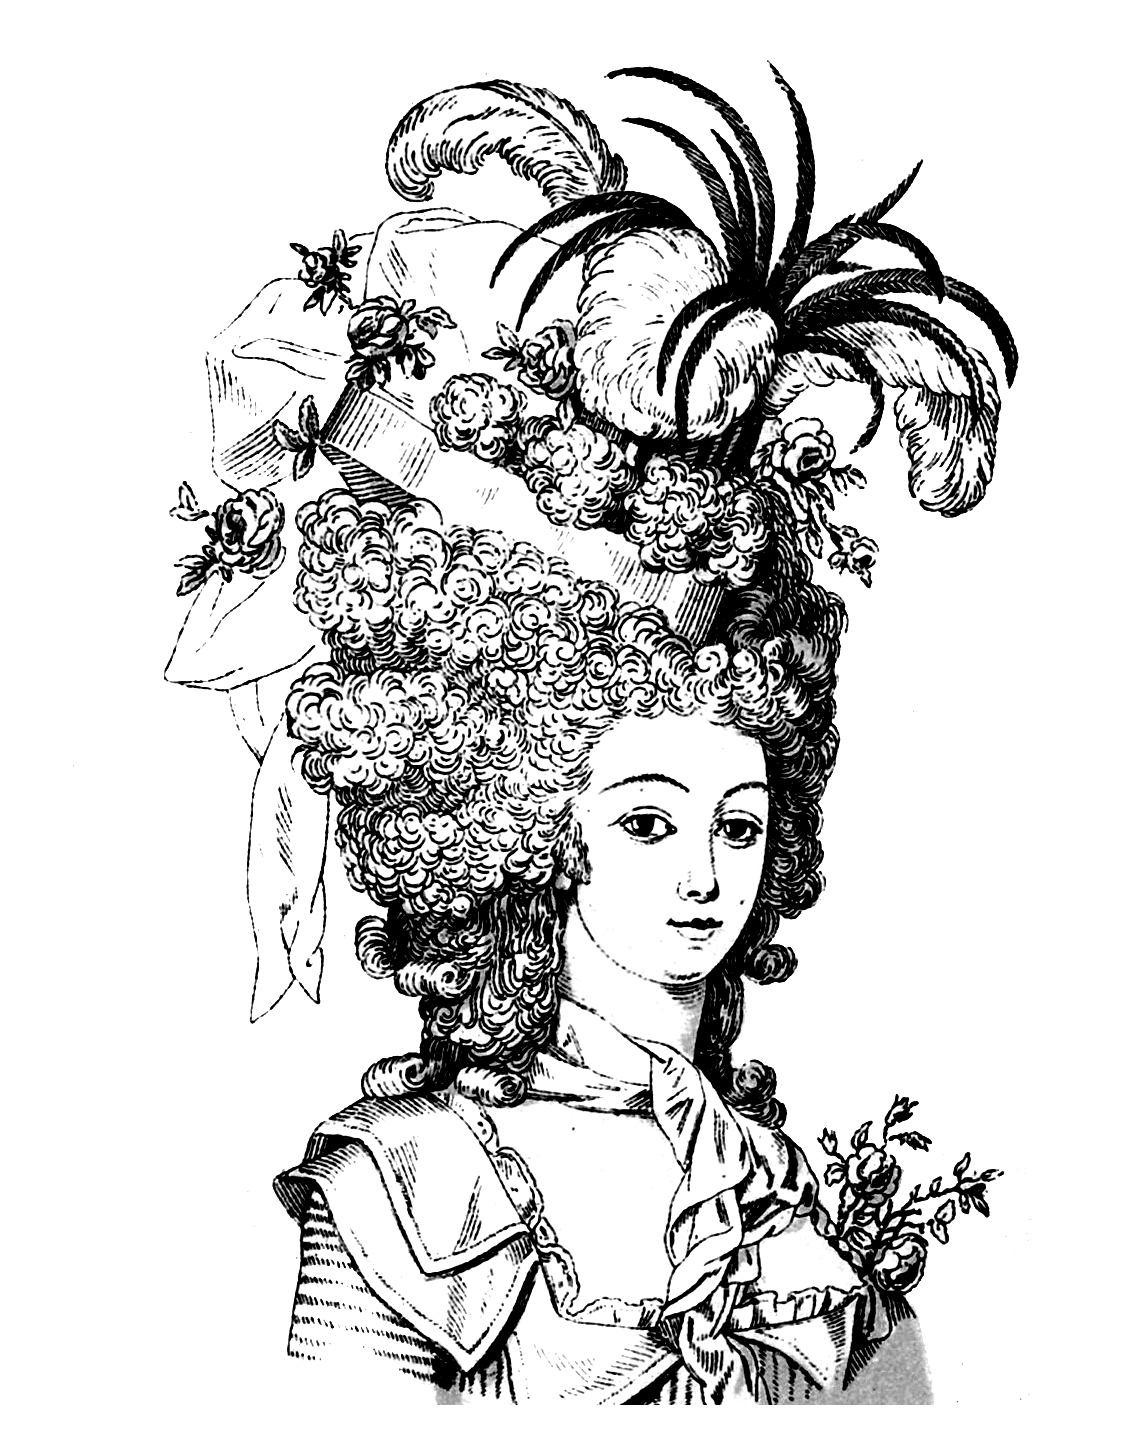 Coloring page of a woman looking like Marie-Antoinette, Queen of France in the 18th century